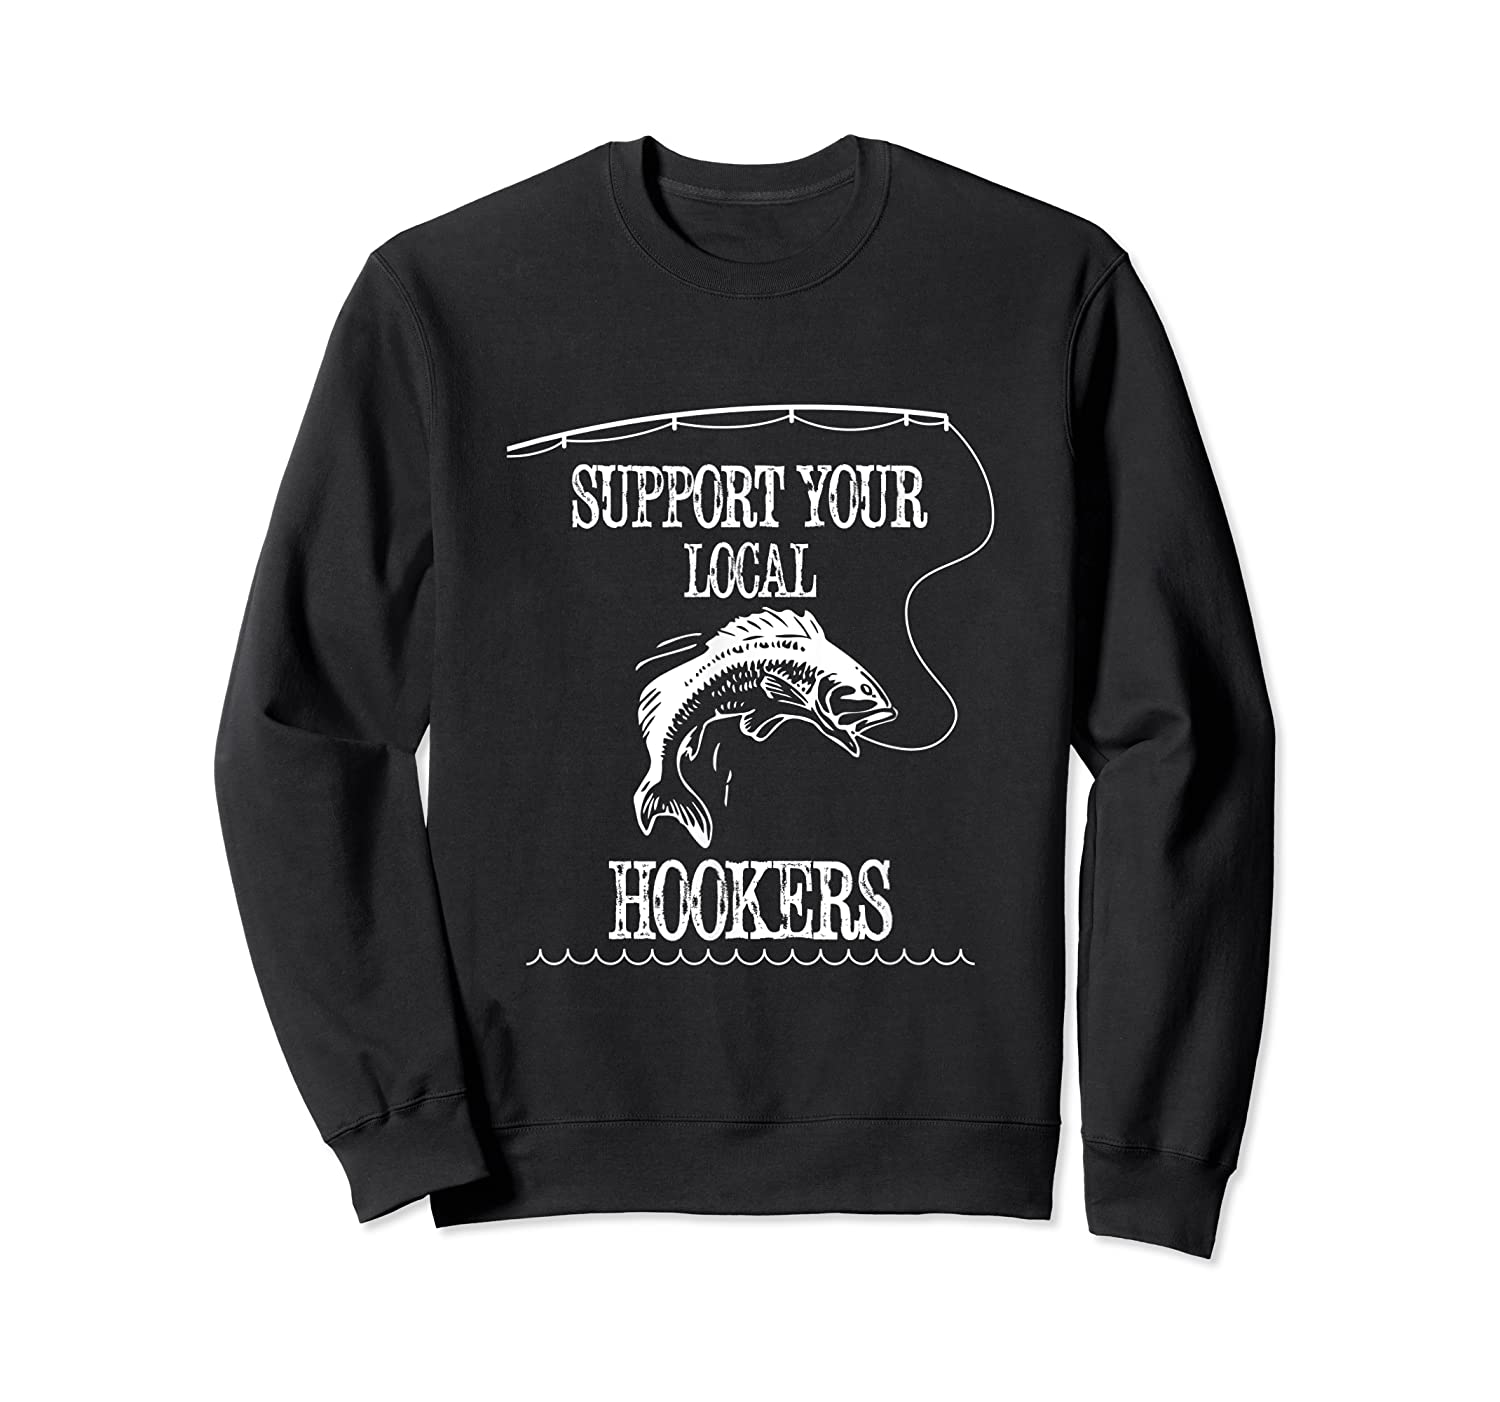 Support Your Local Hookers Funny Fishing Shirts Crewneck Sweater